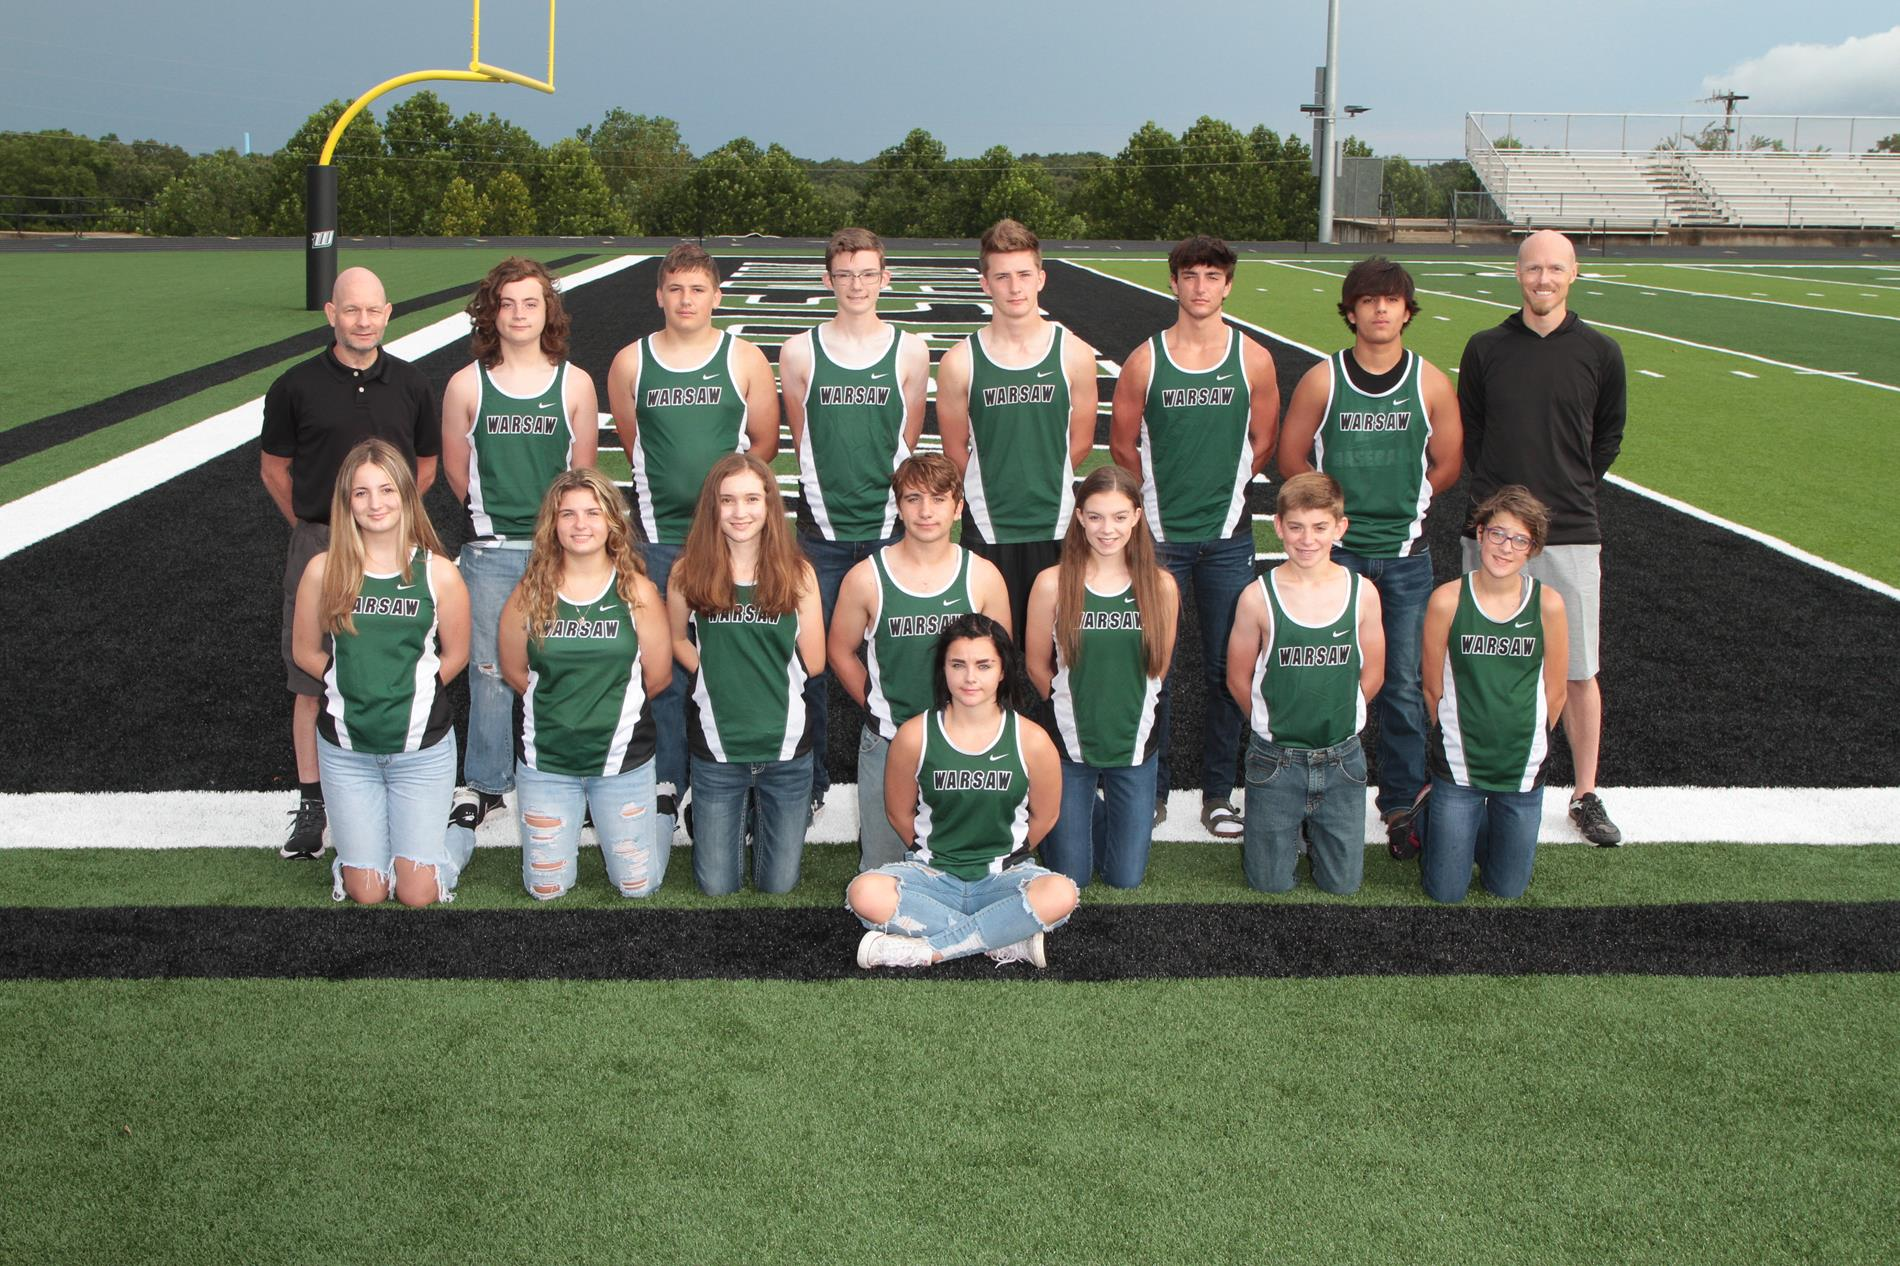 WHS CROSS COUNTRY TEAM